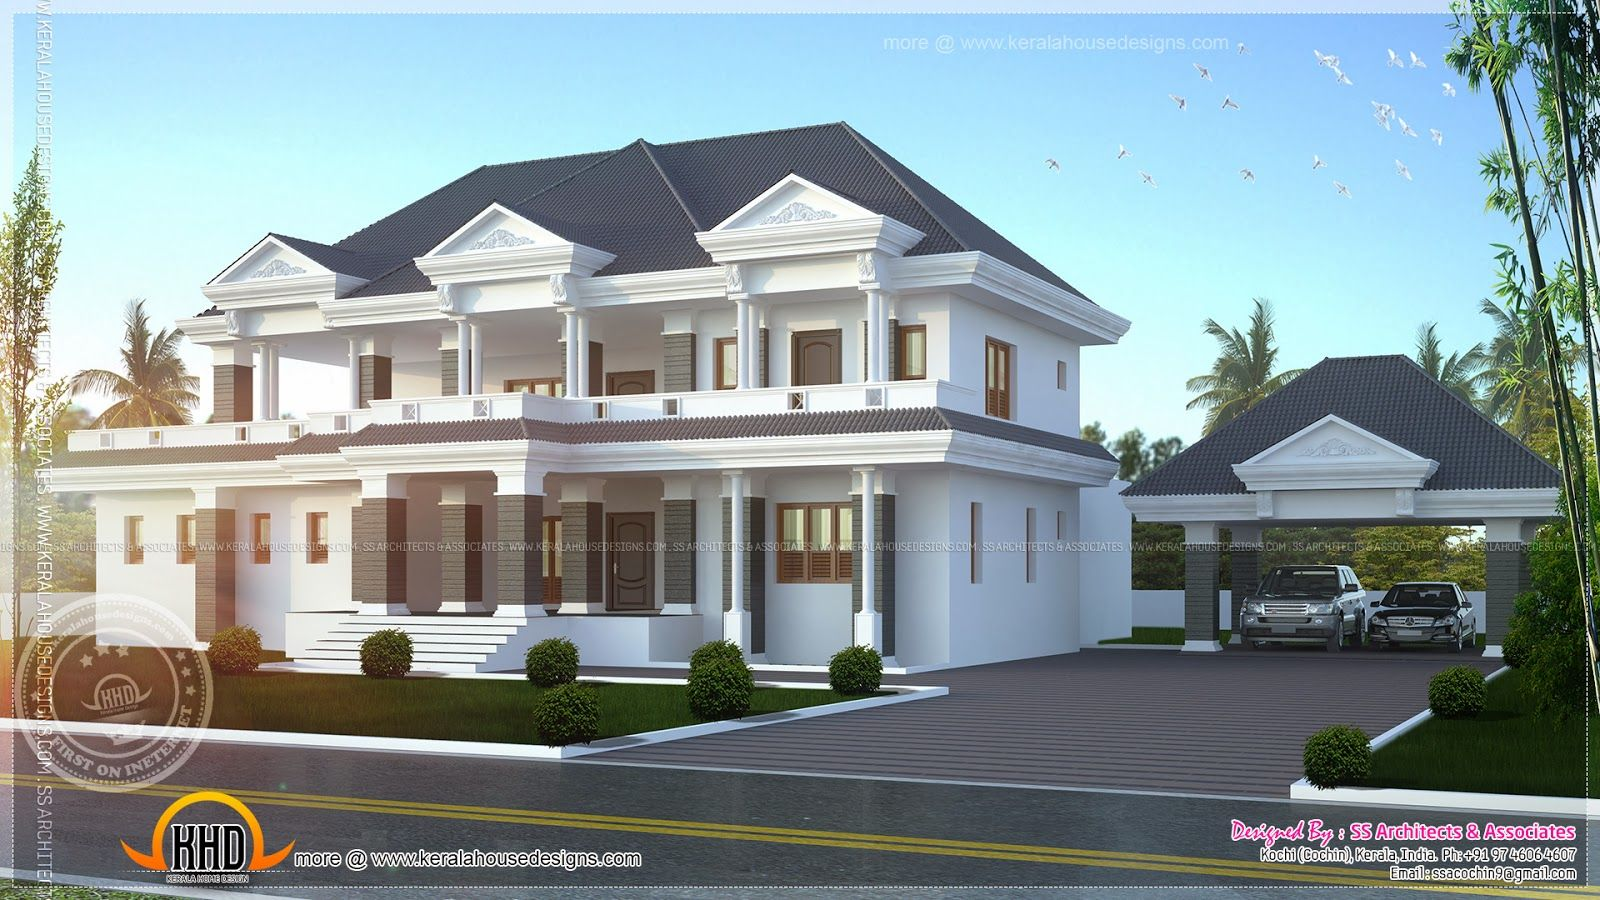 Luxury house plans posh luxury home plan audisb luxury luxury homes luxurious houses - Luxury home designs and floor plans ...